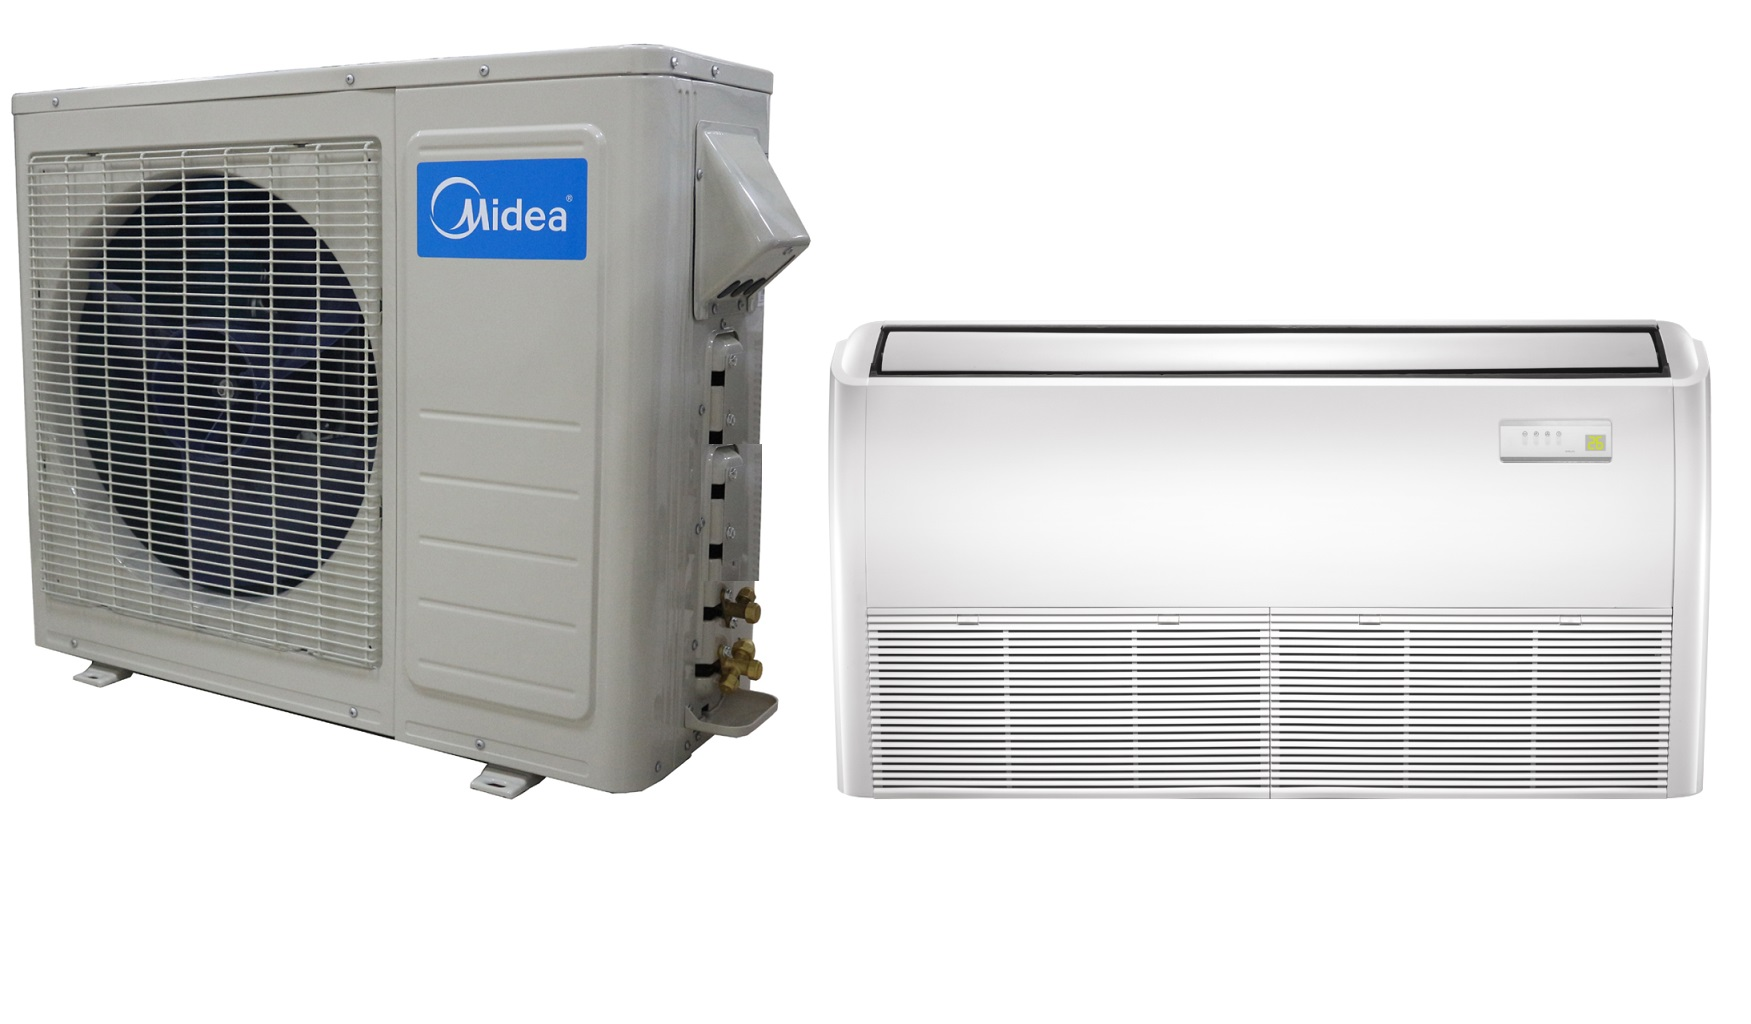 #175EB4 Midea 12000 Btu 19 Seer Universal Mount Mini Split Heat  Most Effective 7075 Wall Mount Package Ac Units pictures with 1751x1024 px on helpvideos.info - Air Conditioners, Air Coolers and more